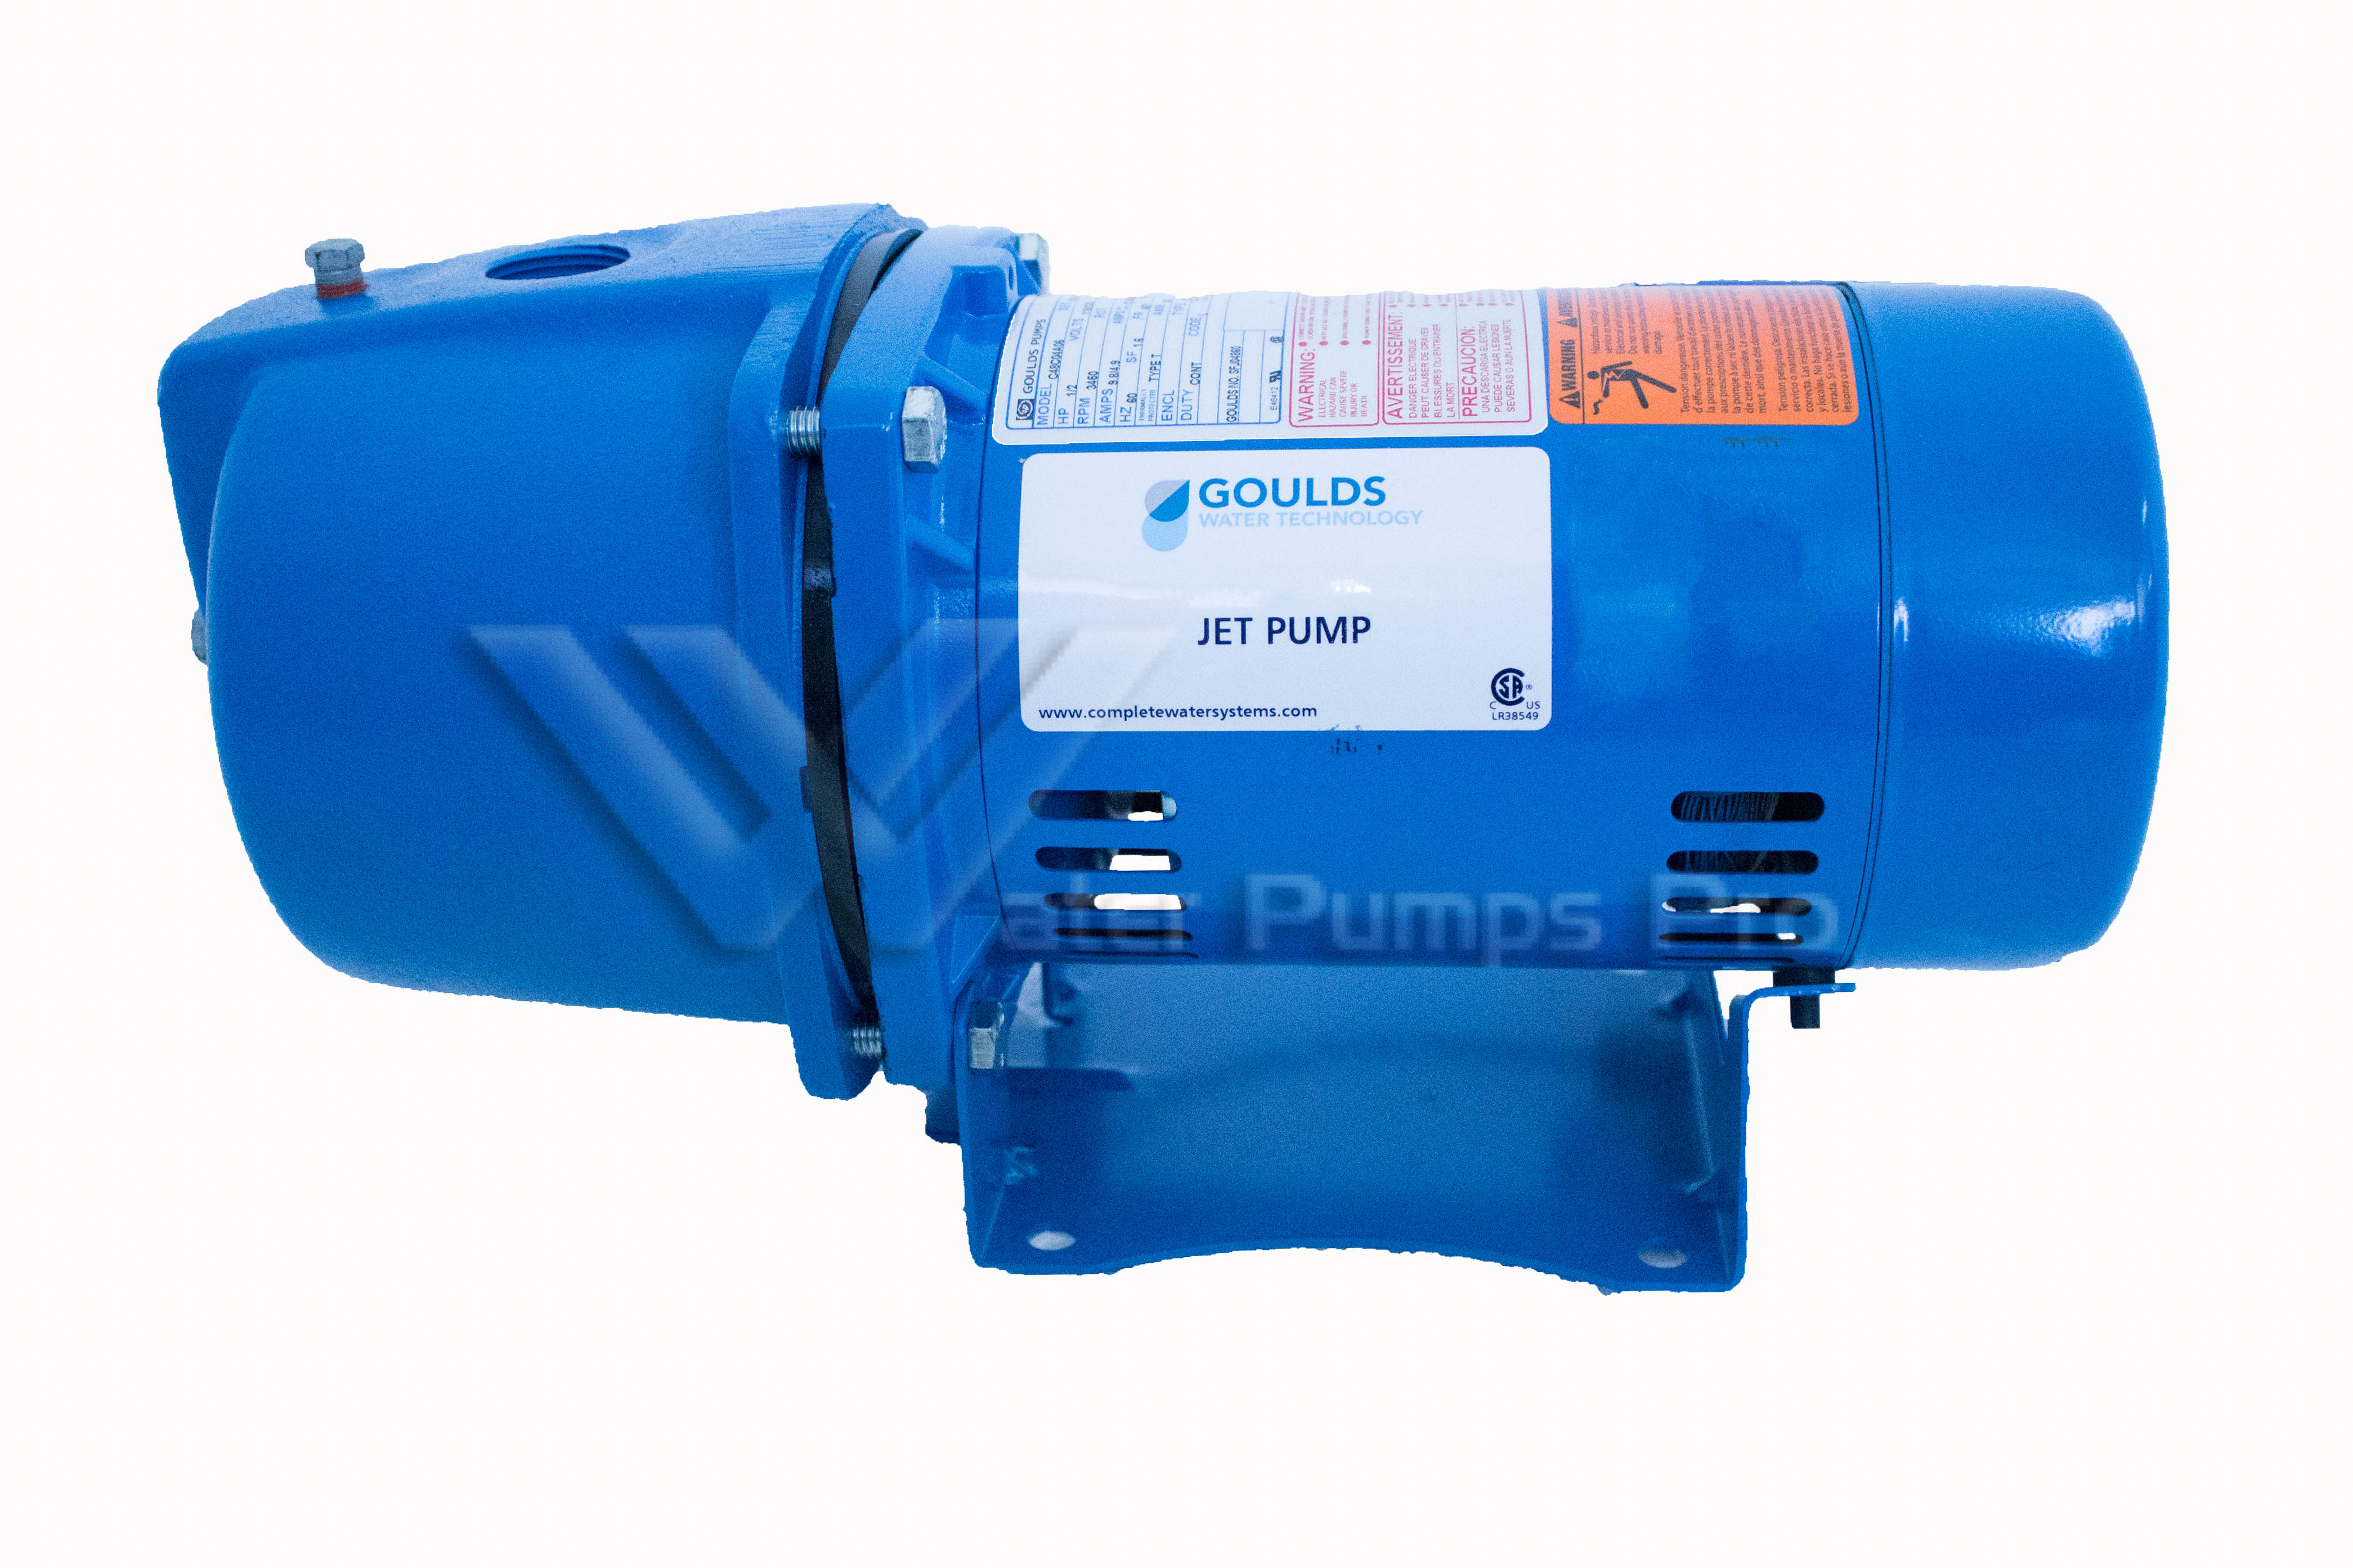 Goulds JRS7 3/4 HP Shallow Water Well Jet Pump 115/230V 1 Phase